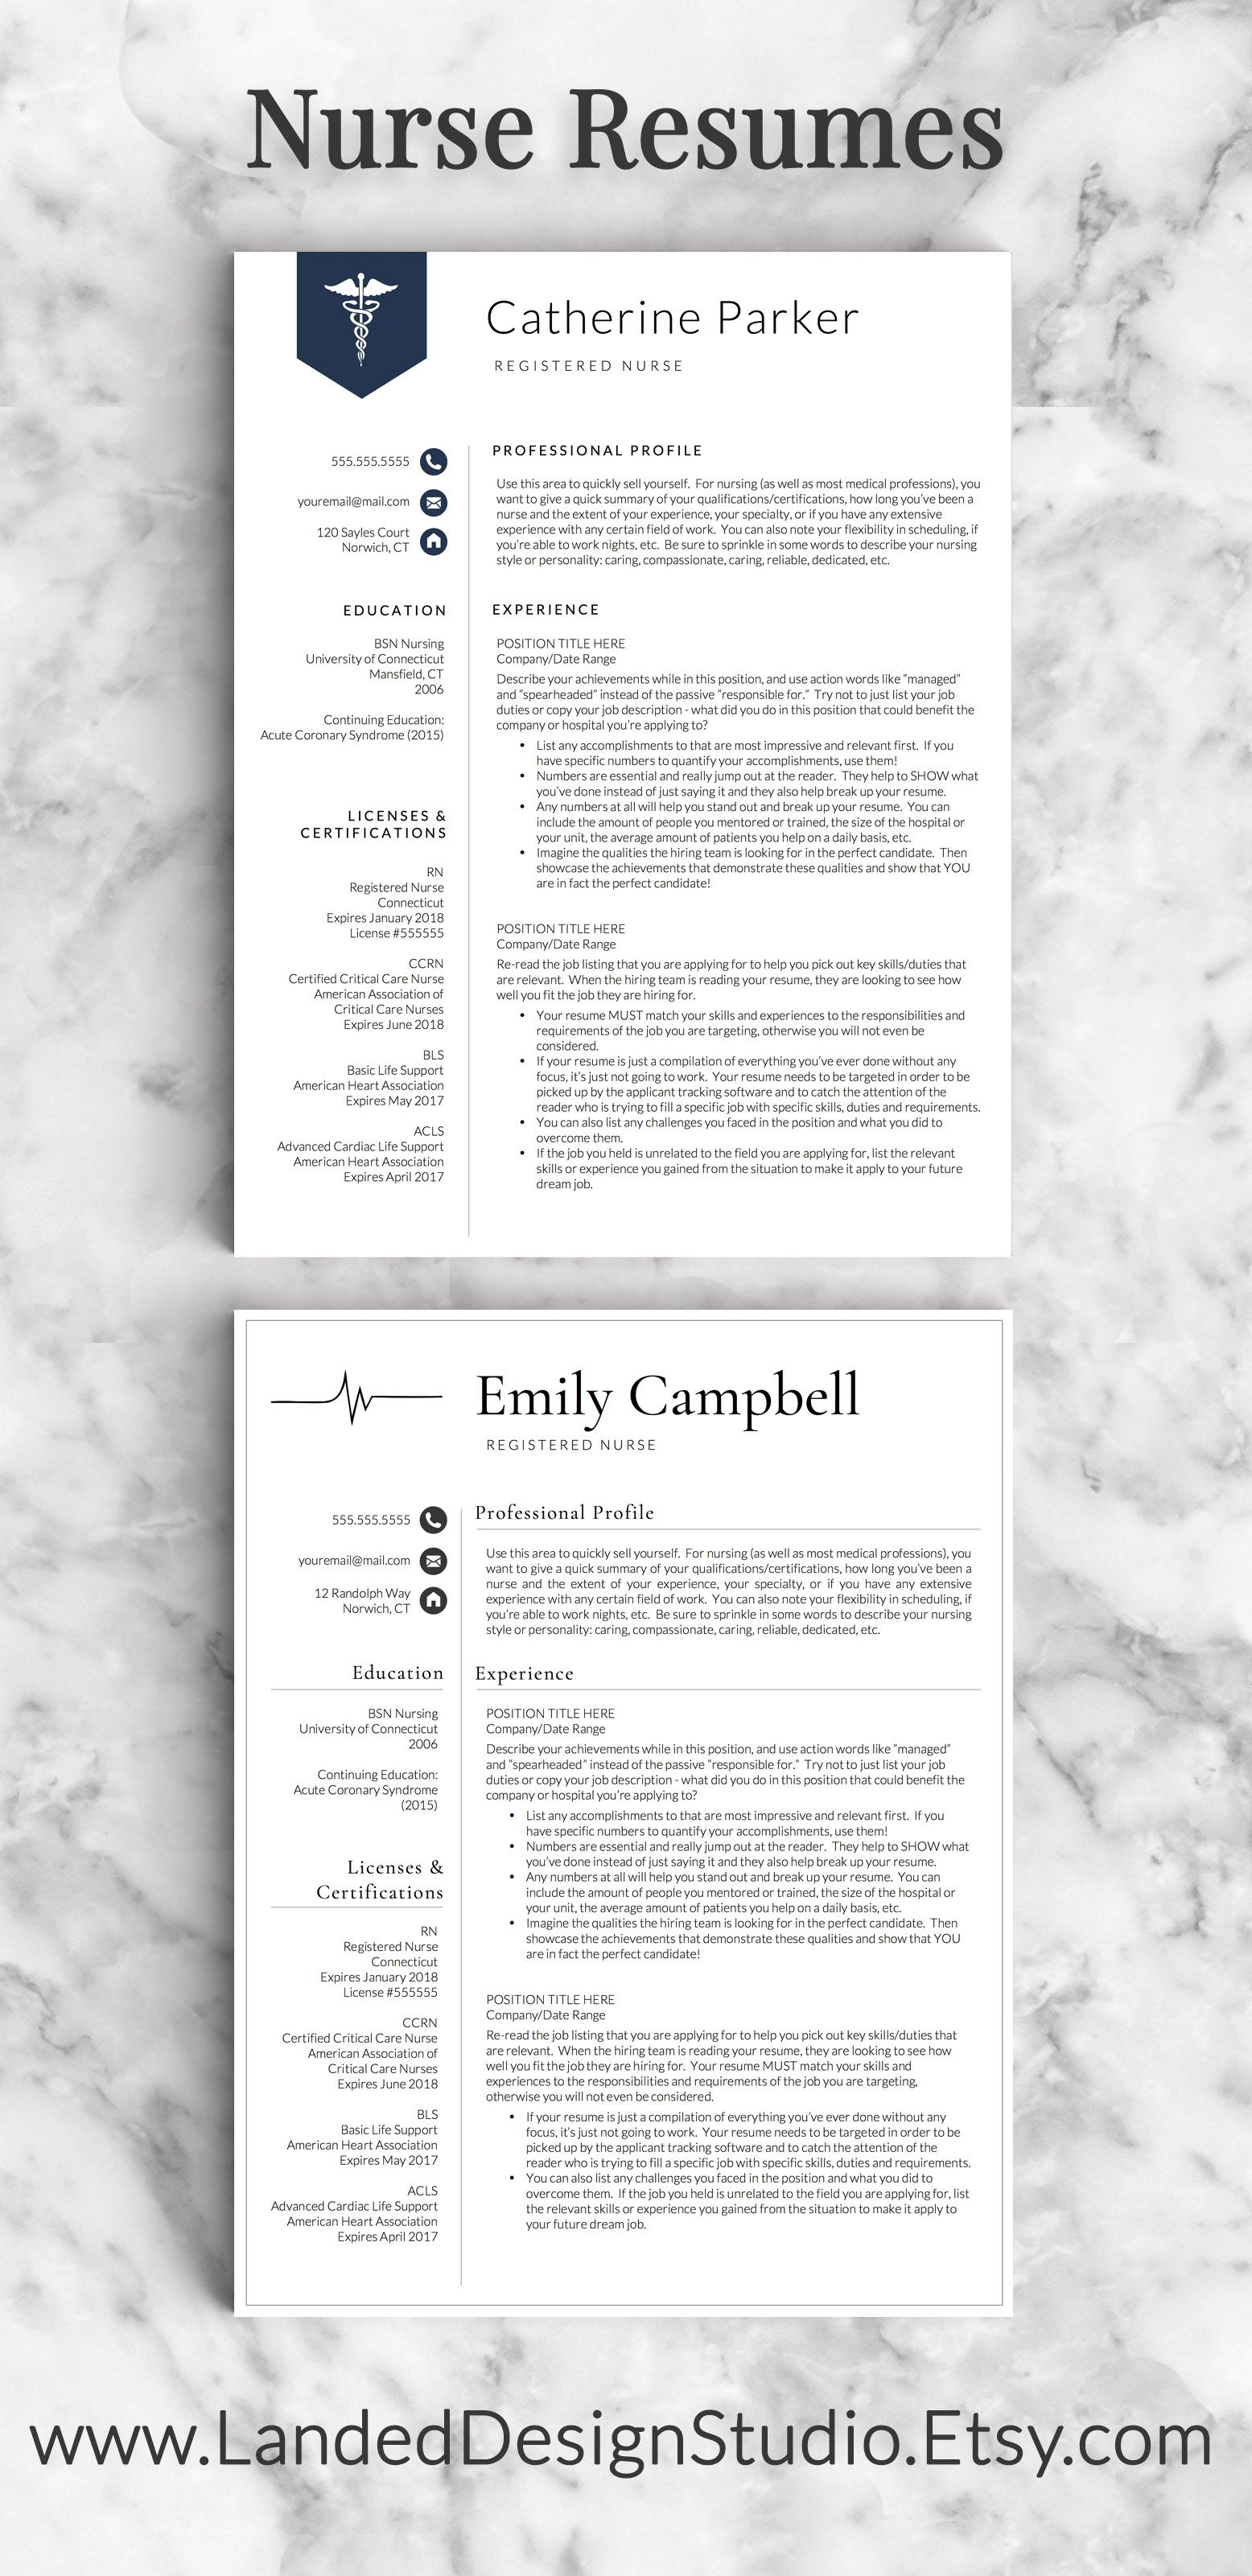 Examples Of Nursing Resumes Nurse Resume Templates  Makes Me Want To Hurry Up And Finish